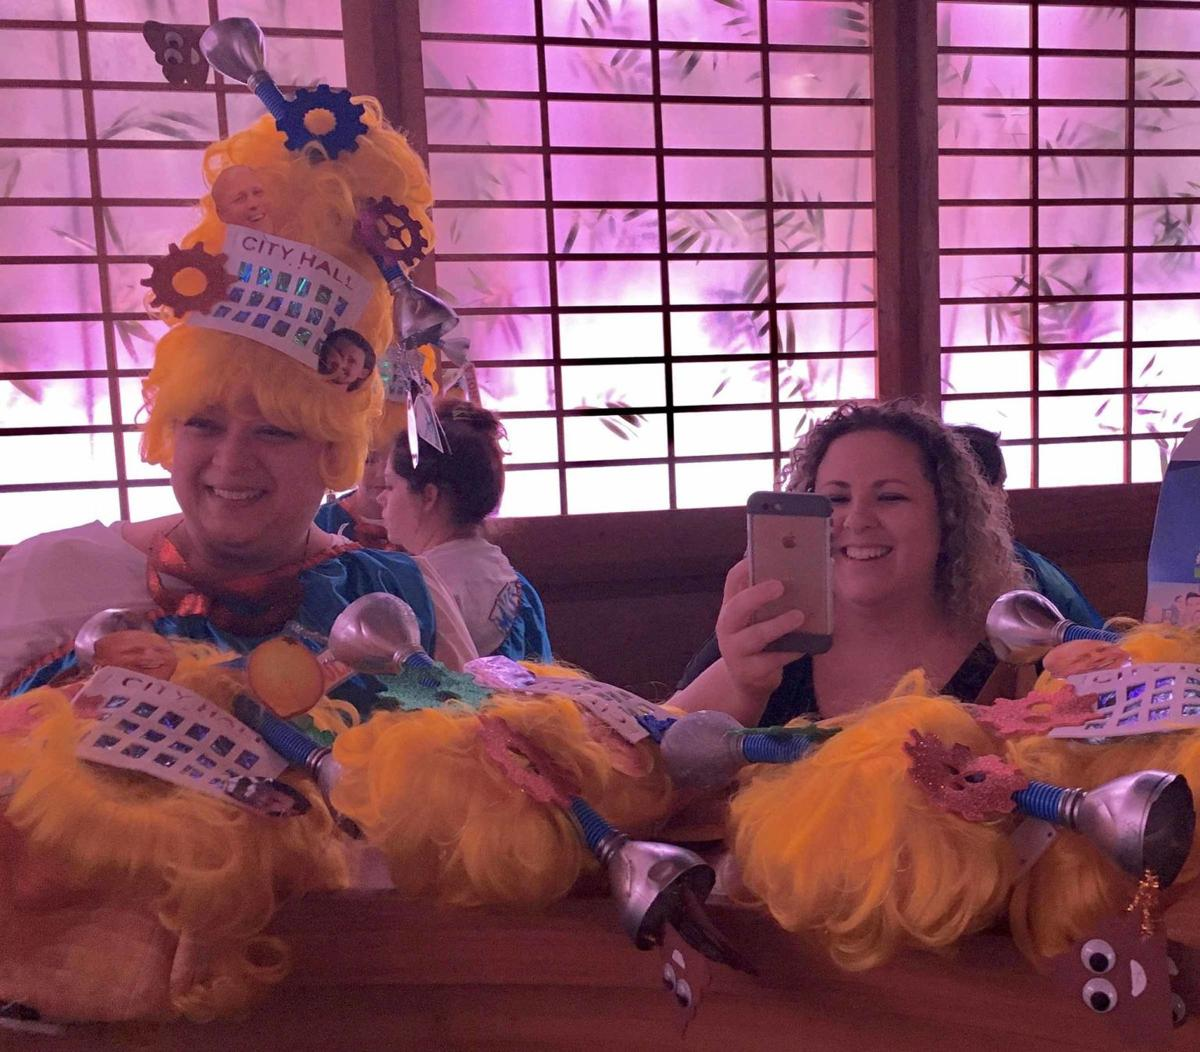 A Muse for a day: 10-year-old survivor honored by Mardi Gras krewe